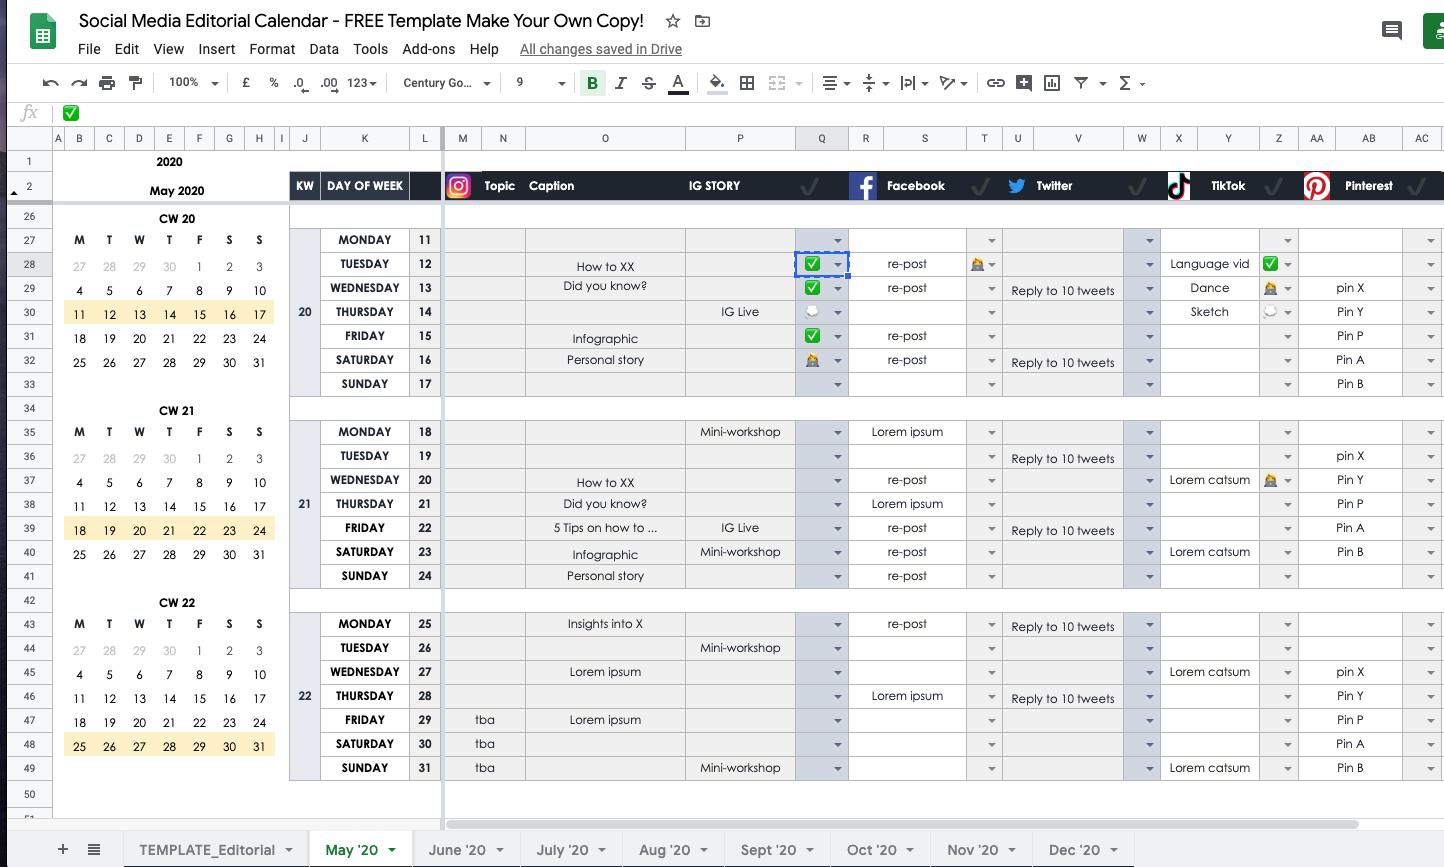 Social Media Content Calendar Template Excel from miro.medium.com